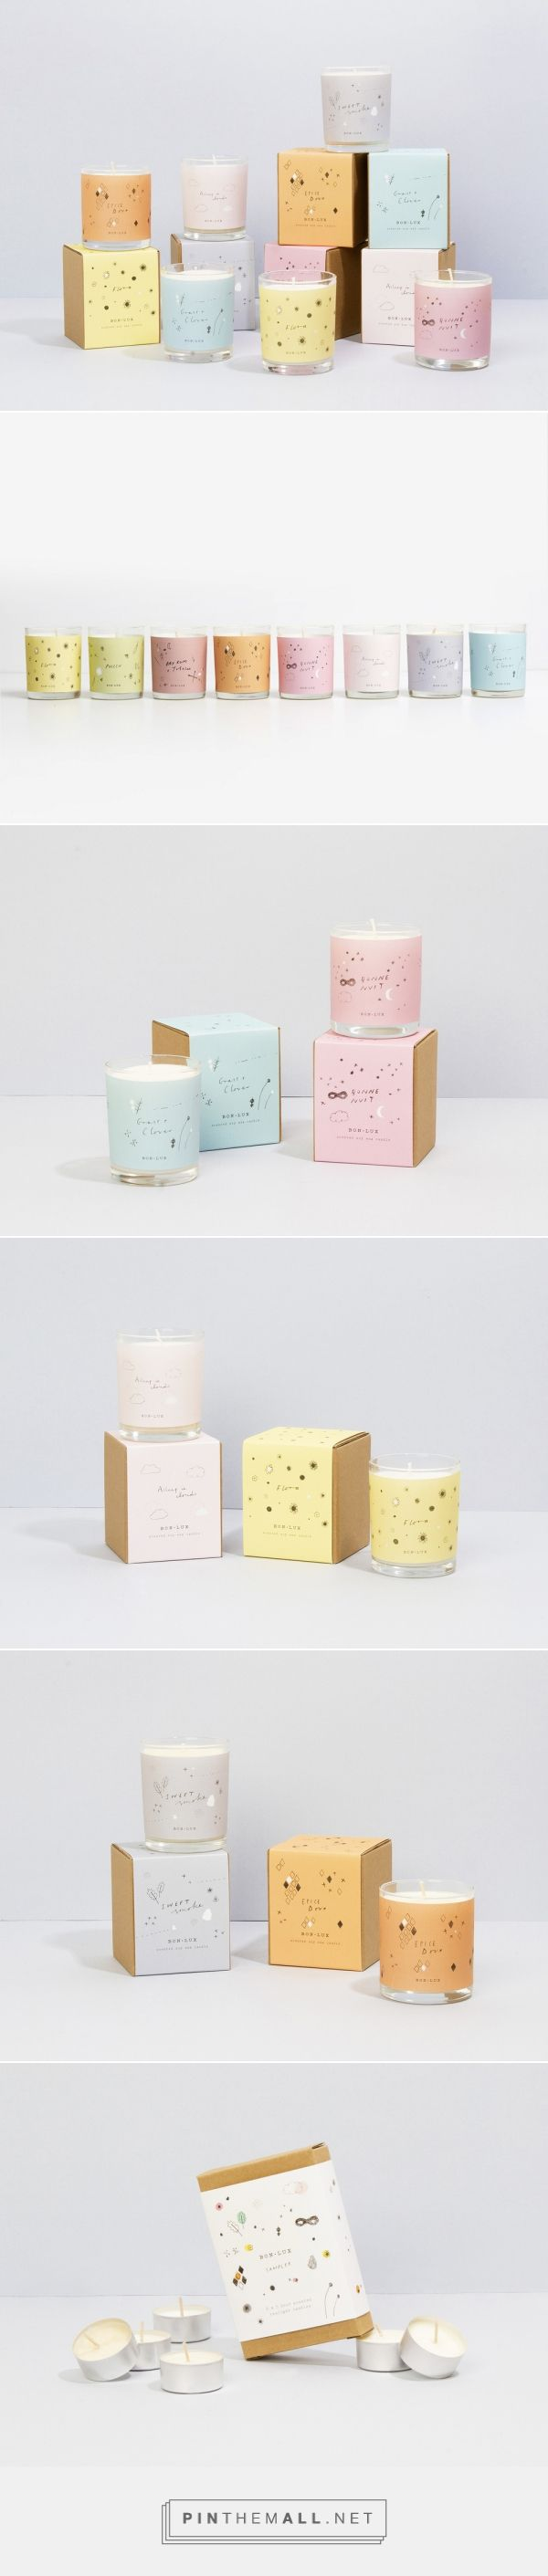 Box Lux Candle Packaging by Holly Canham | Fivestar Branding – Design and Branding Agency & Inspiration Gallery